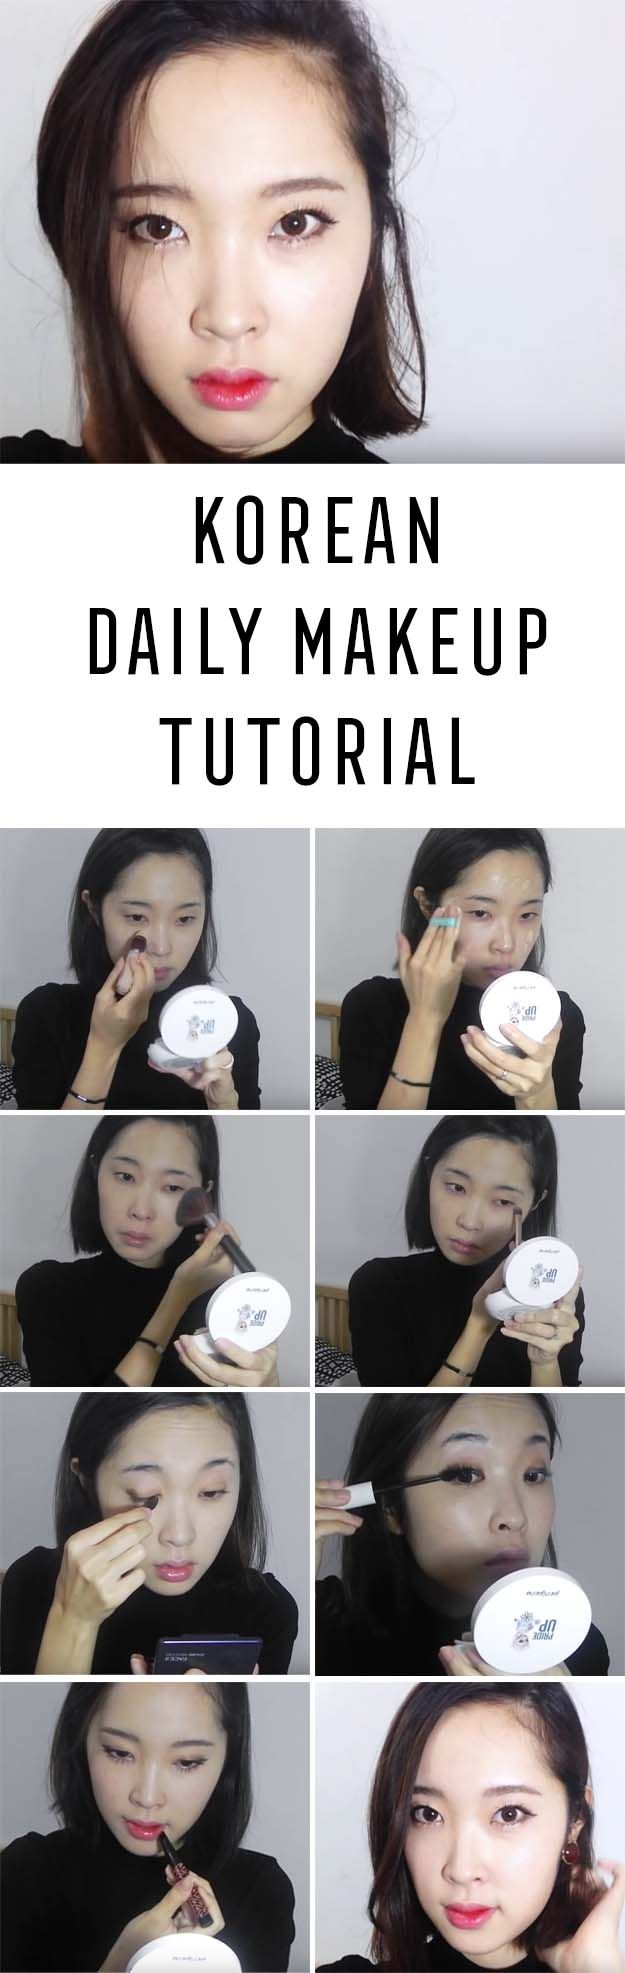 Best Korean Makeup Tutorials - Korean Daily Makeup Tutorial⭐️ 겨울 데일리메이크업 - Natural Step By Step Tutorials For Ulzzang, Pony, Puppy Eyes, Eyeshadows, Kpop, Eyebrows, Eyeliner and even Hairstyles. Super Cute DIY And Easy Contouring, Foundation, and Simple Dewy Skin Help For Beginners - https://www.thegoddess.com/best-korean-makeup-tutorials